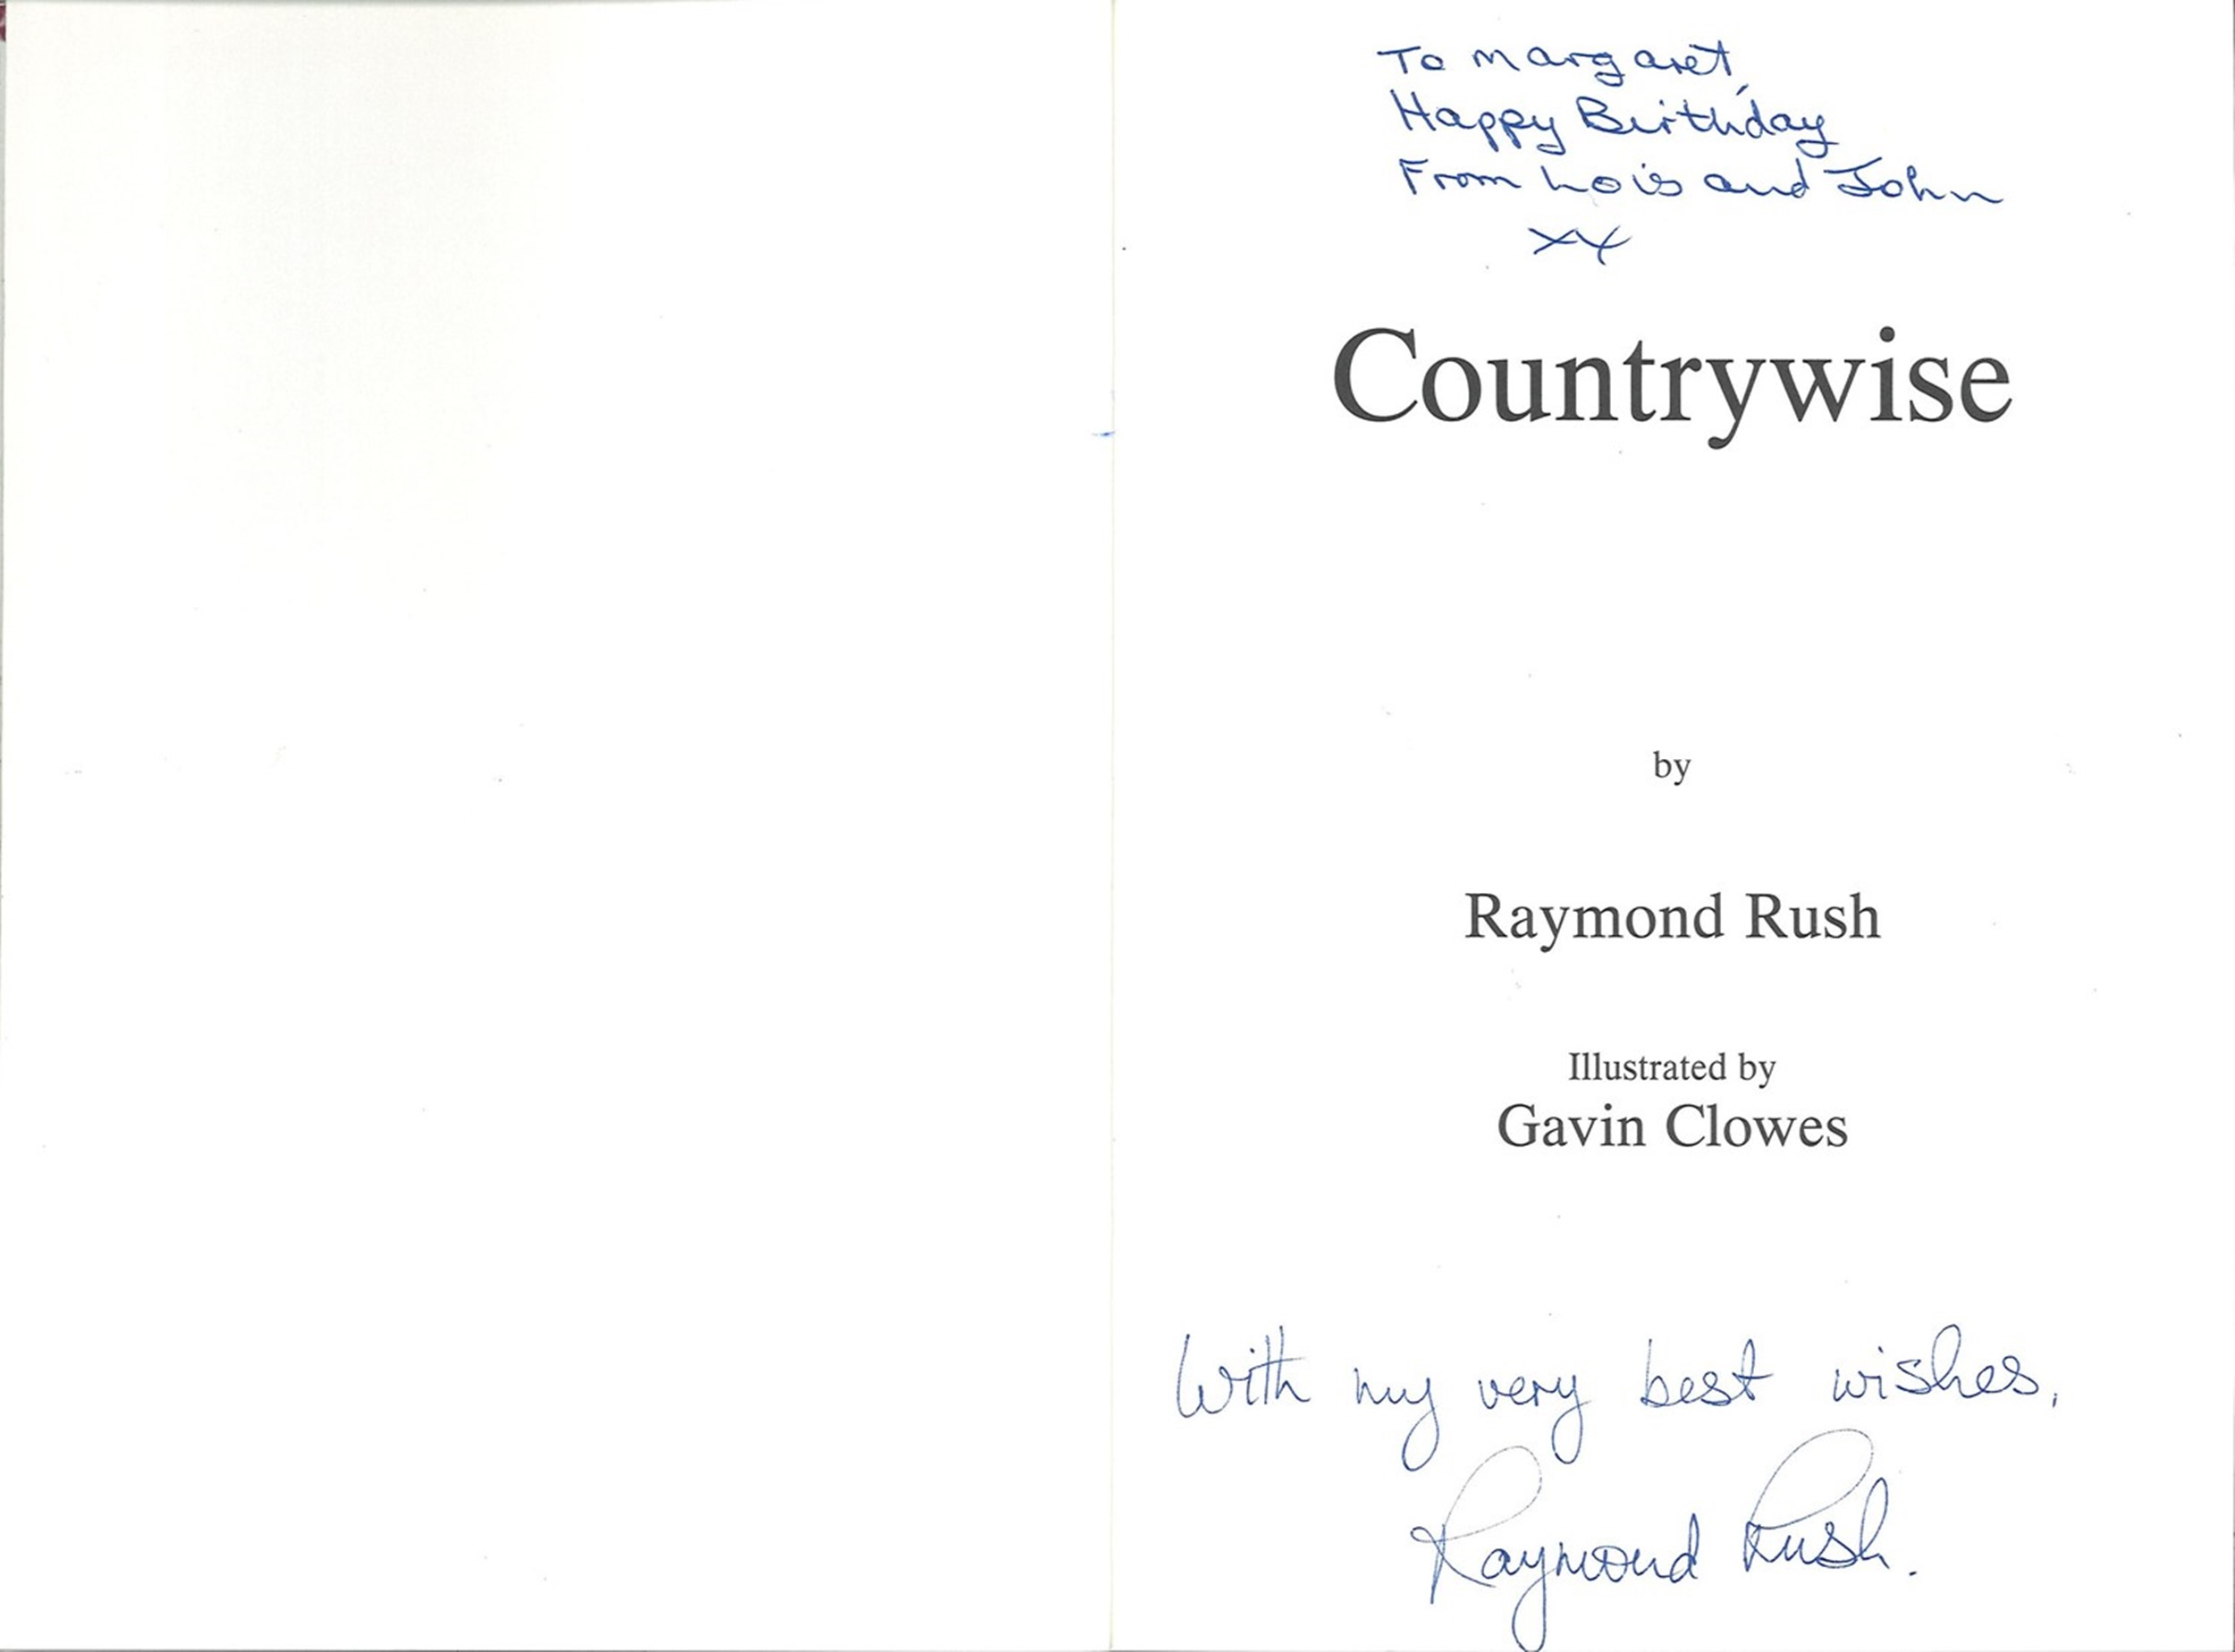 5 Agricultural Books, 4 Signed and 1 Unsigned Hard and Paperback Books, Includes Unsigned - Image 2 of 3